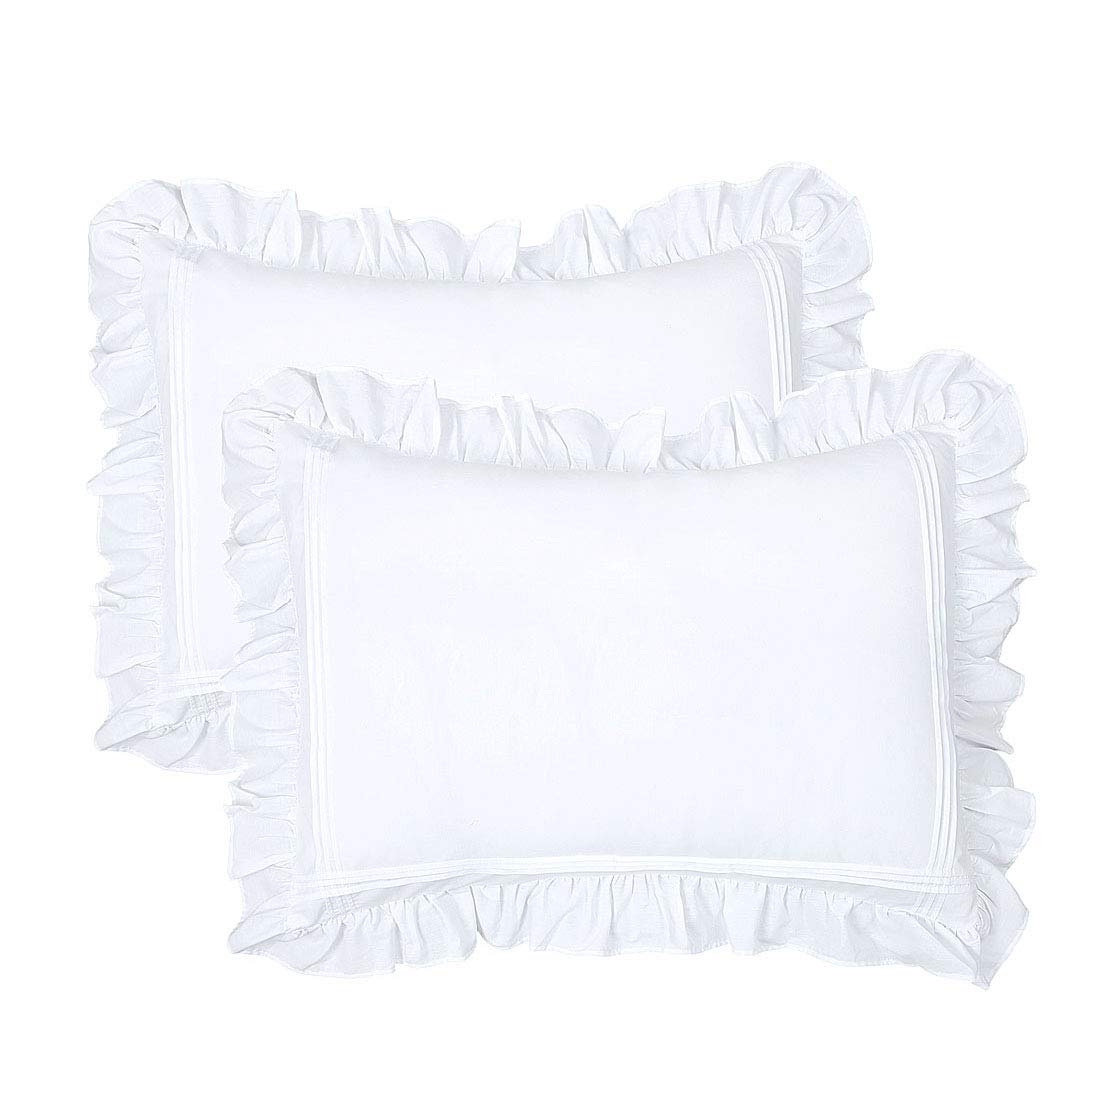 Ruffled Pillow Shams Standard White Set of 2 Lace Pillowcases Shabby Chic Bright Farmhouse Victorian Country French Princess Frilly Pillow Cover Protector Pure Cotton Pintuck Pretty Cute 20x26